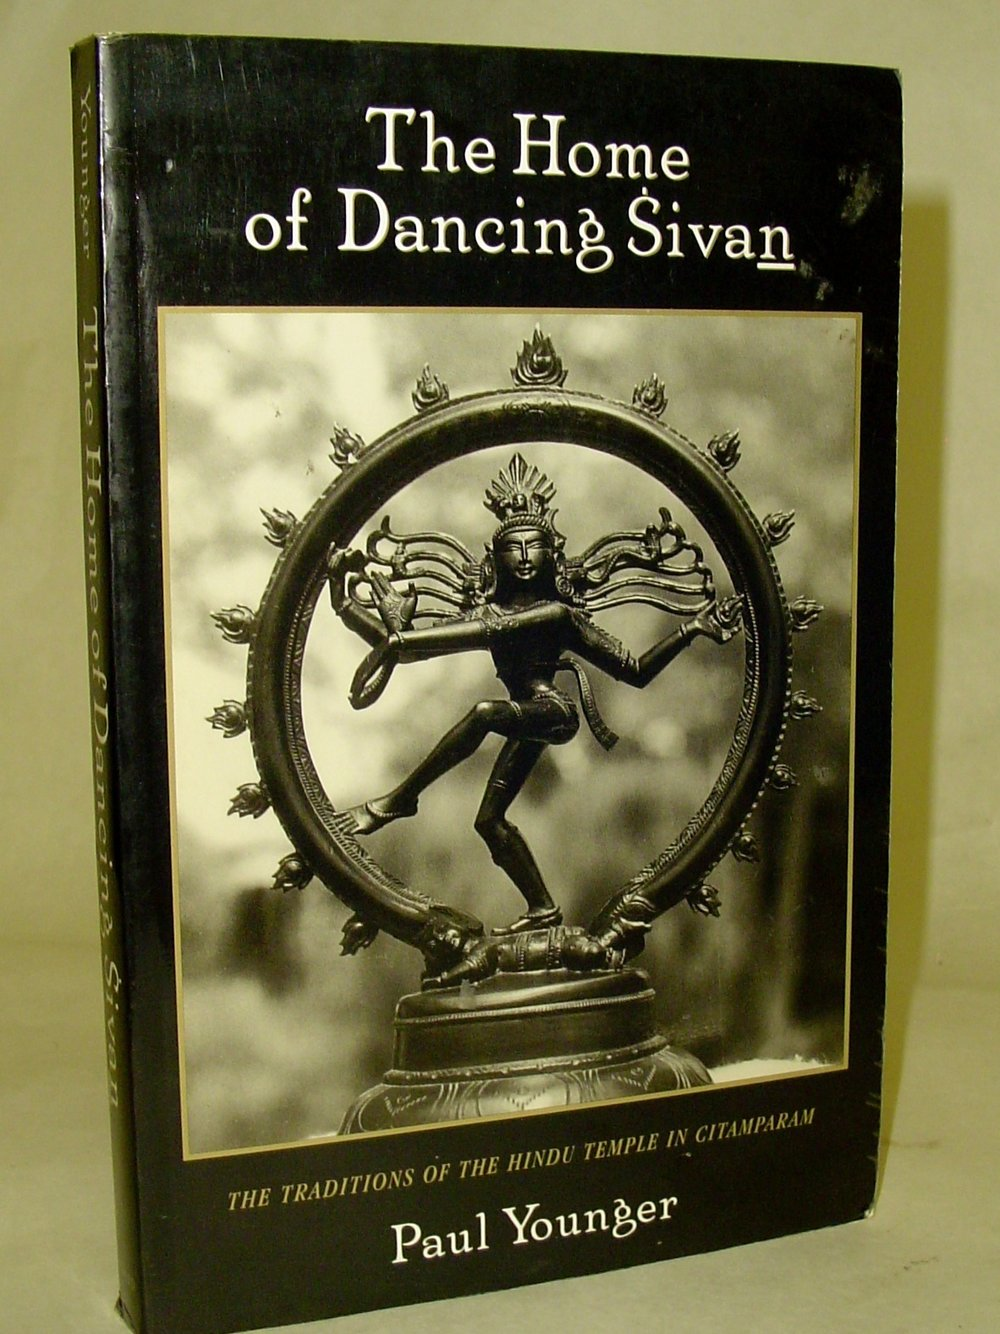 The Home of the Dancing Siva: Traditions of the Hindu Temple in Citamparam  By Paul Younger  $25  An inquiry into the traditions of the Citamparam temple in South India, the only Hindu temple where the image of Sivan as Natarajan, the dancer, is the central focus of worship.   Read more on eBay